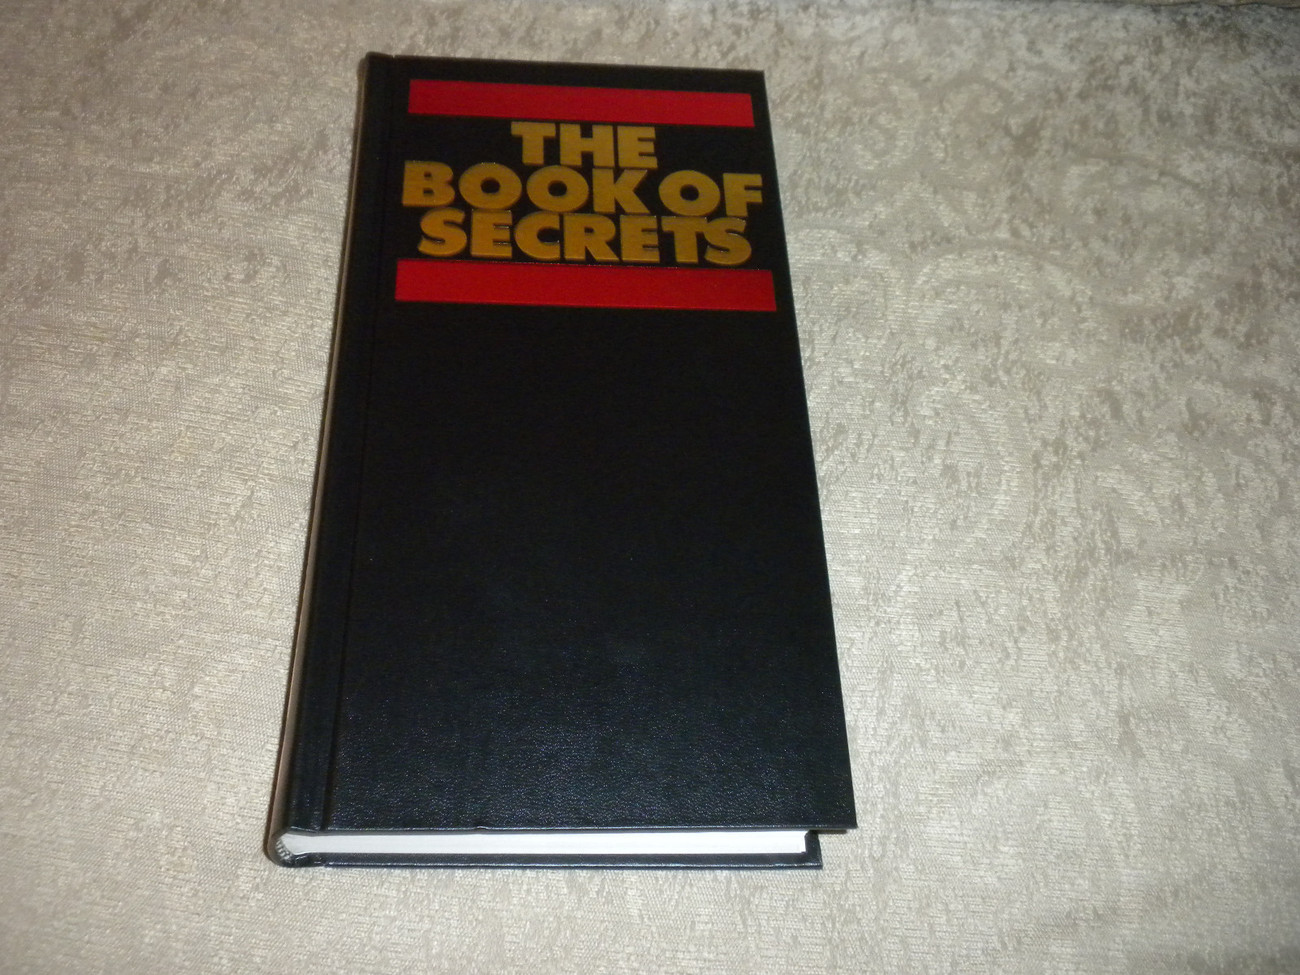 The Book of Secrets by Marion Buhagiar HardCover fr Boardroom Reports Fine cond